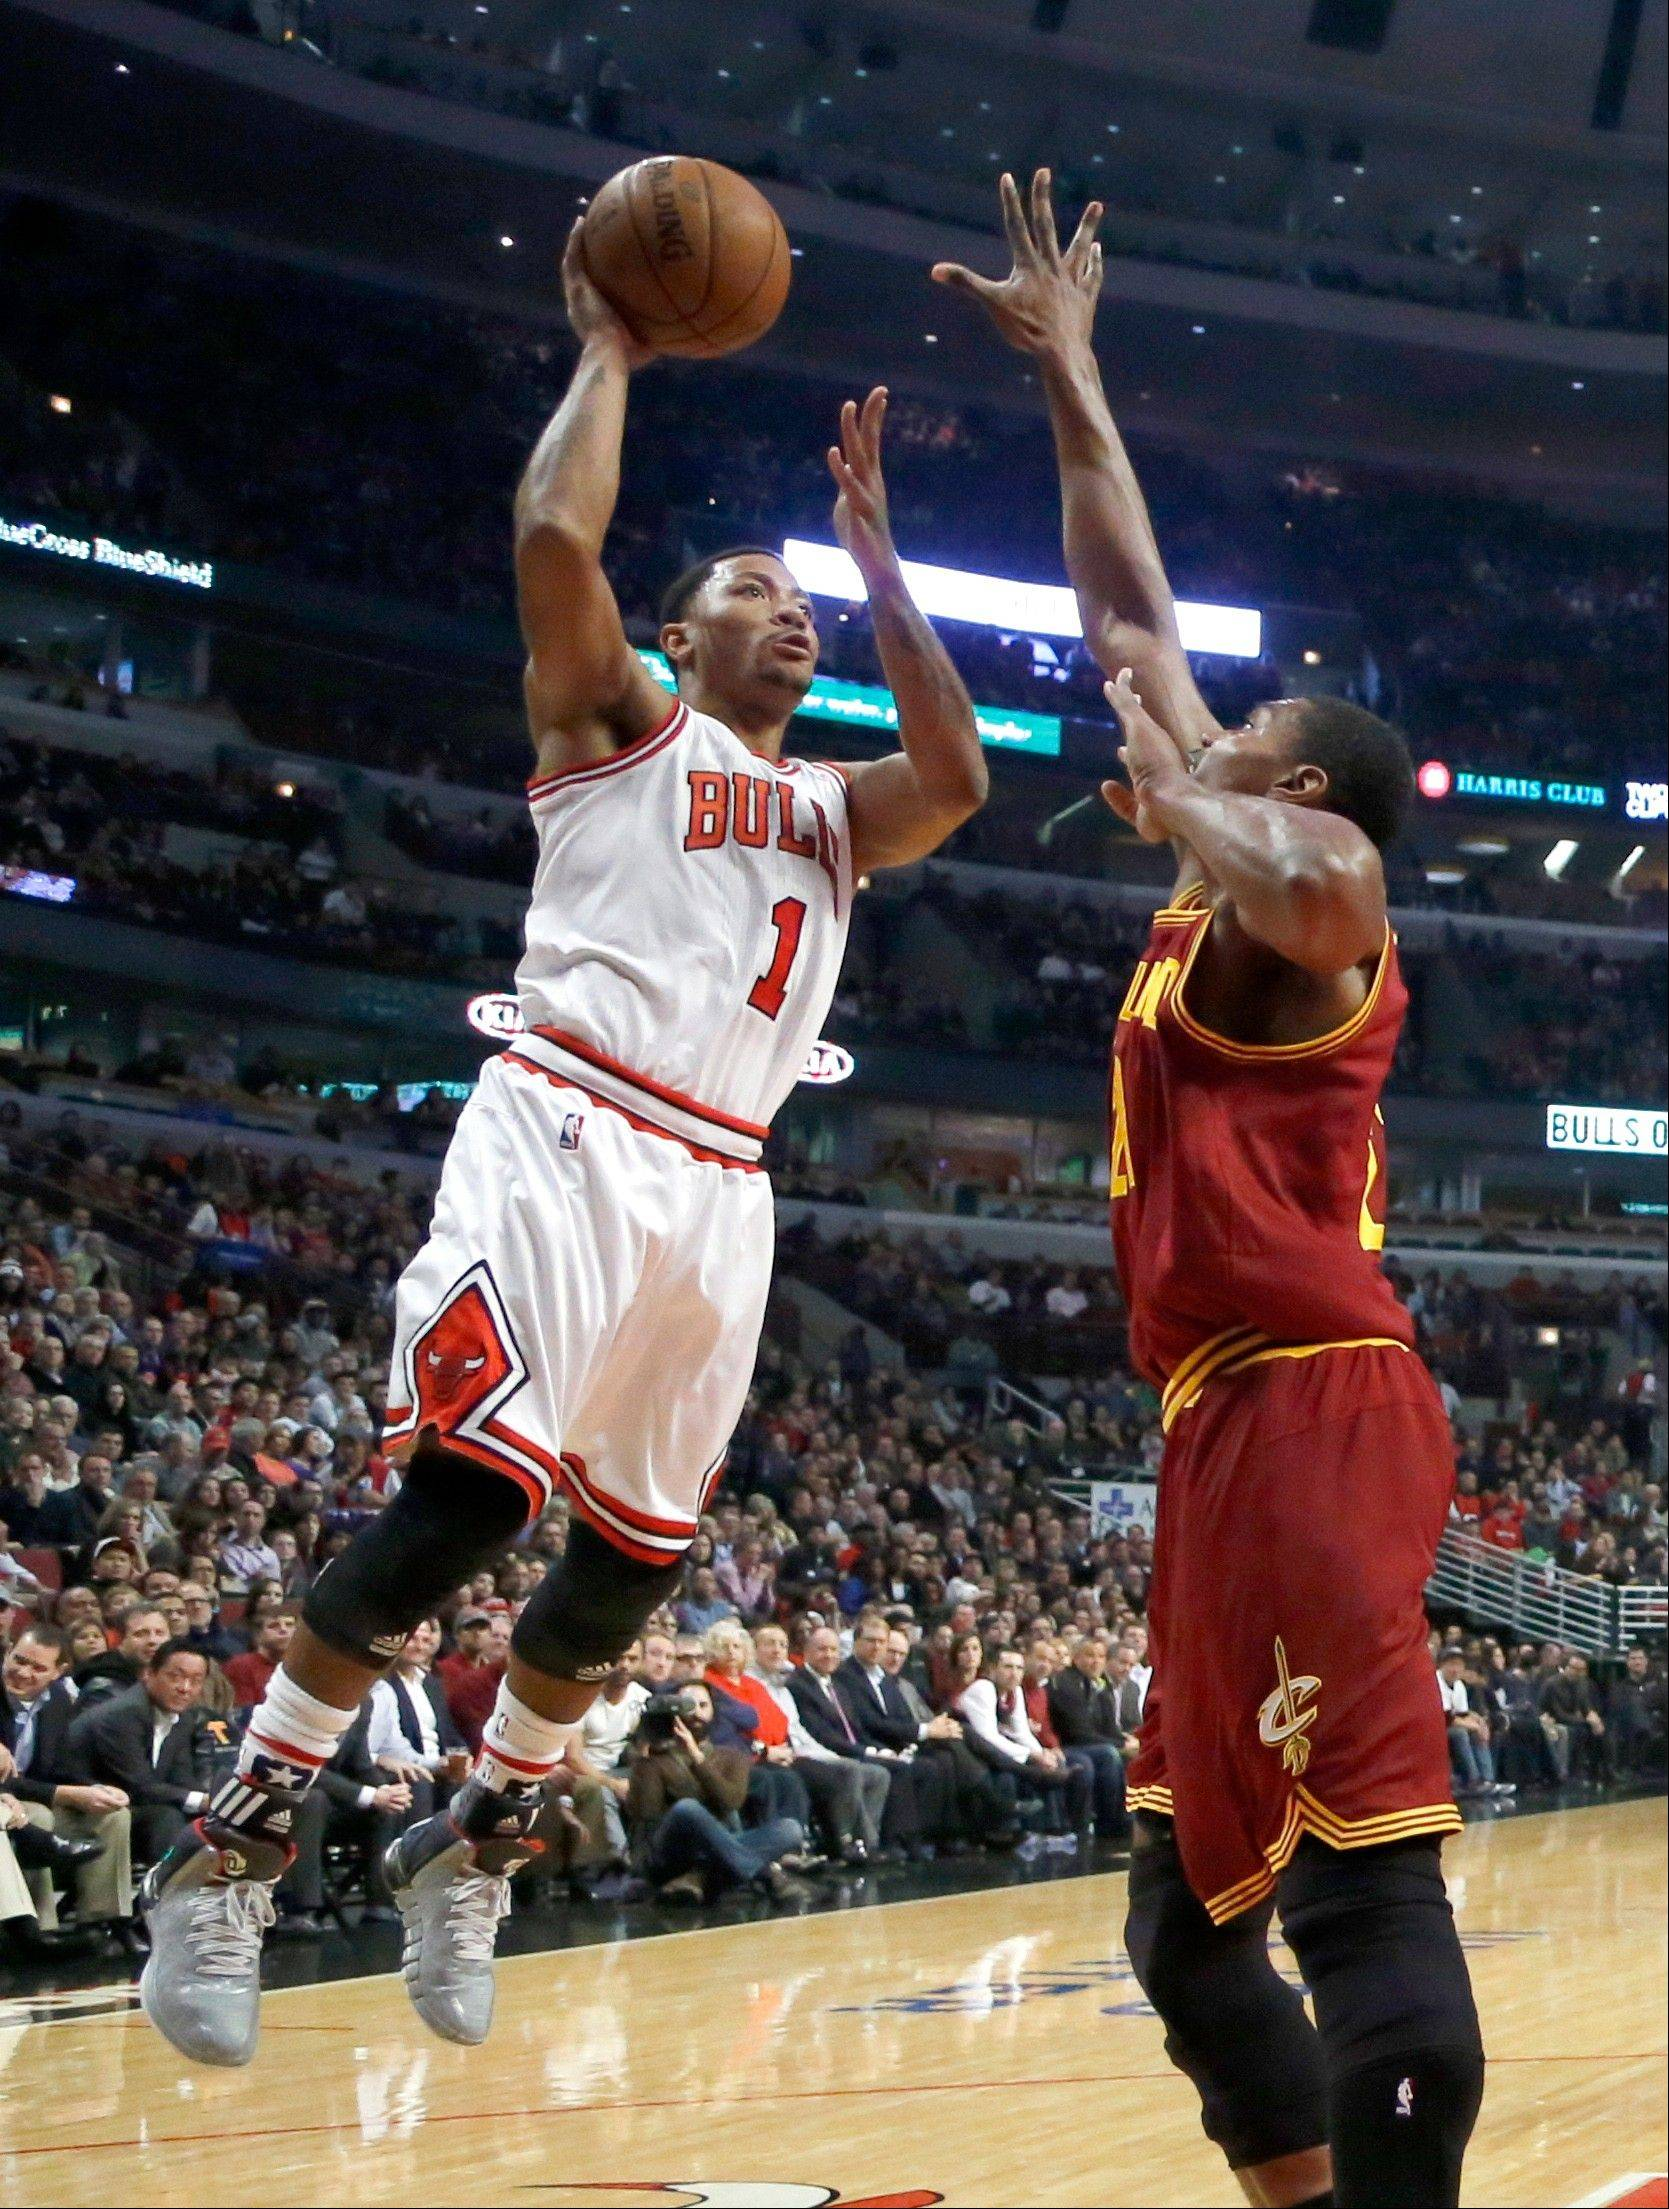 The Bulls� Derrick Rose shoots over Cleveland�s Andrew Bynum during the first half Monday night at the United Center. Rose sat out the final three minutes of the Bulls� victory after suffering a hamstring injury.